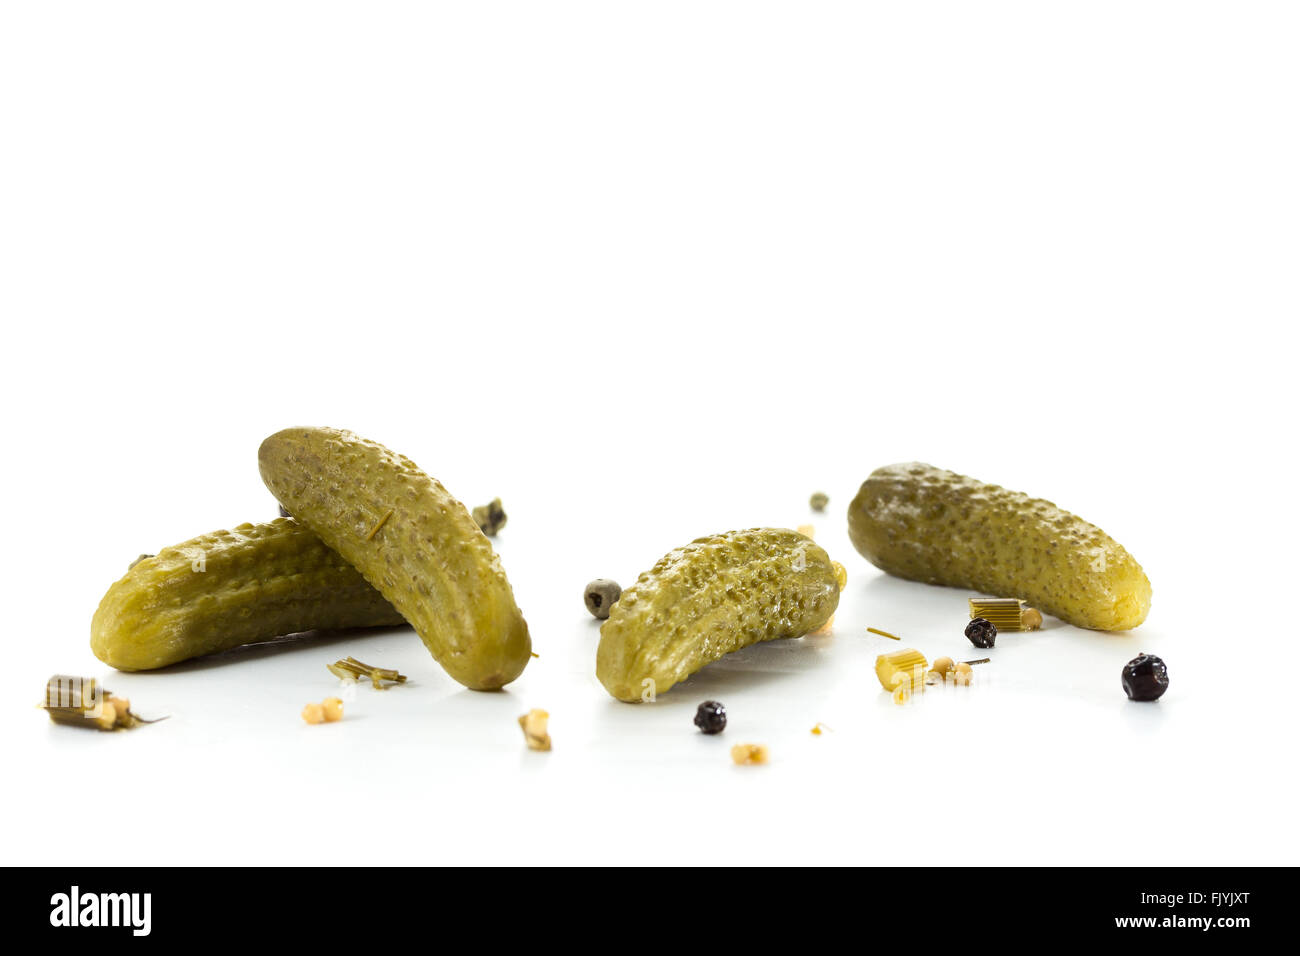 Pickled green gherkins with spices - Stock Image